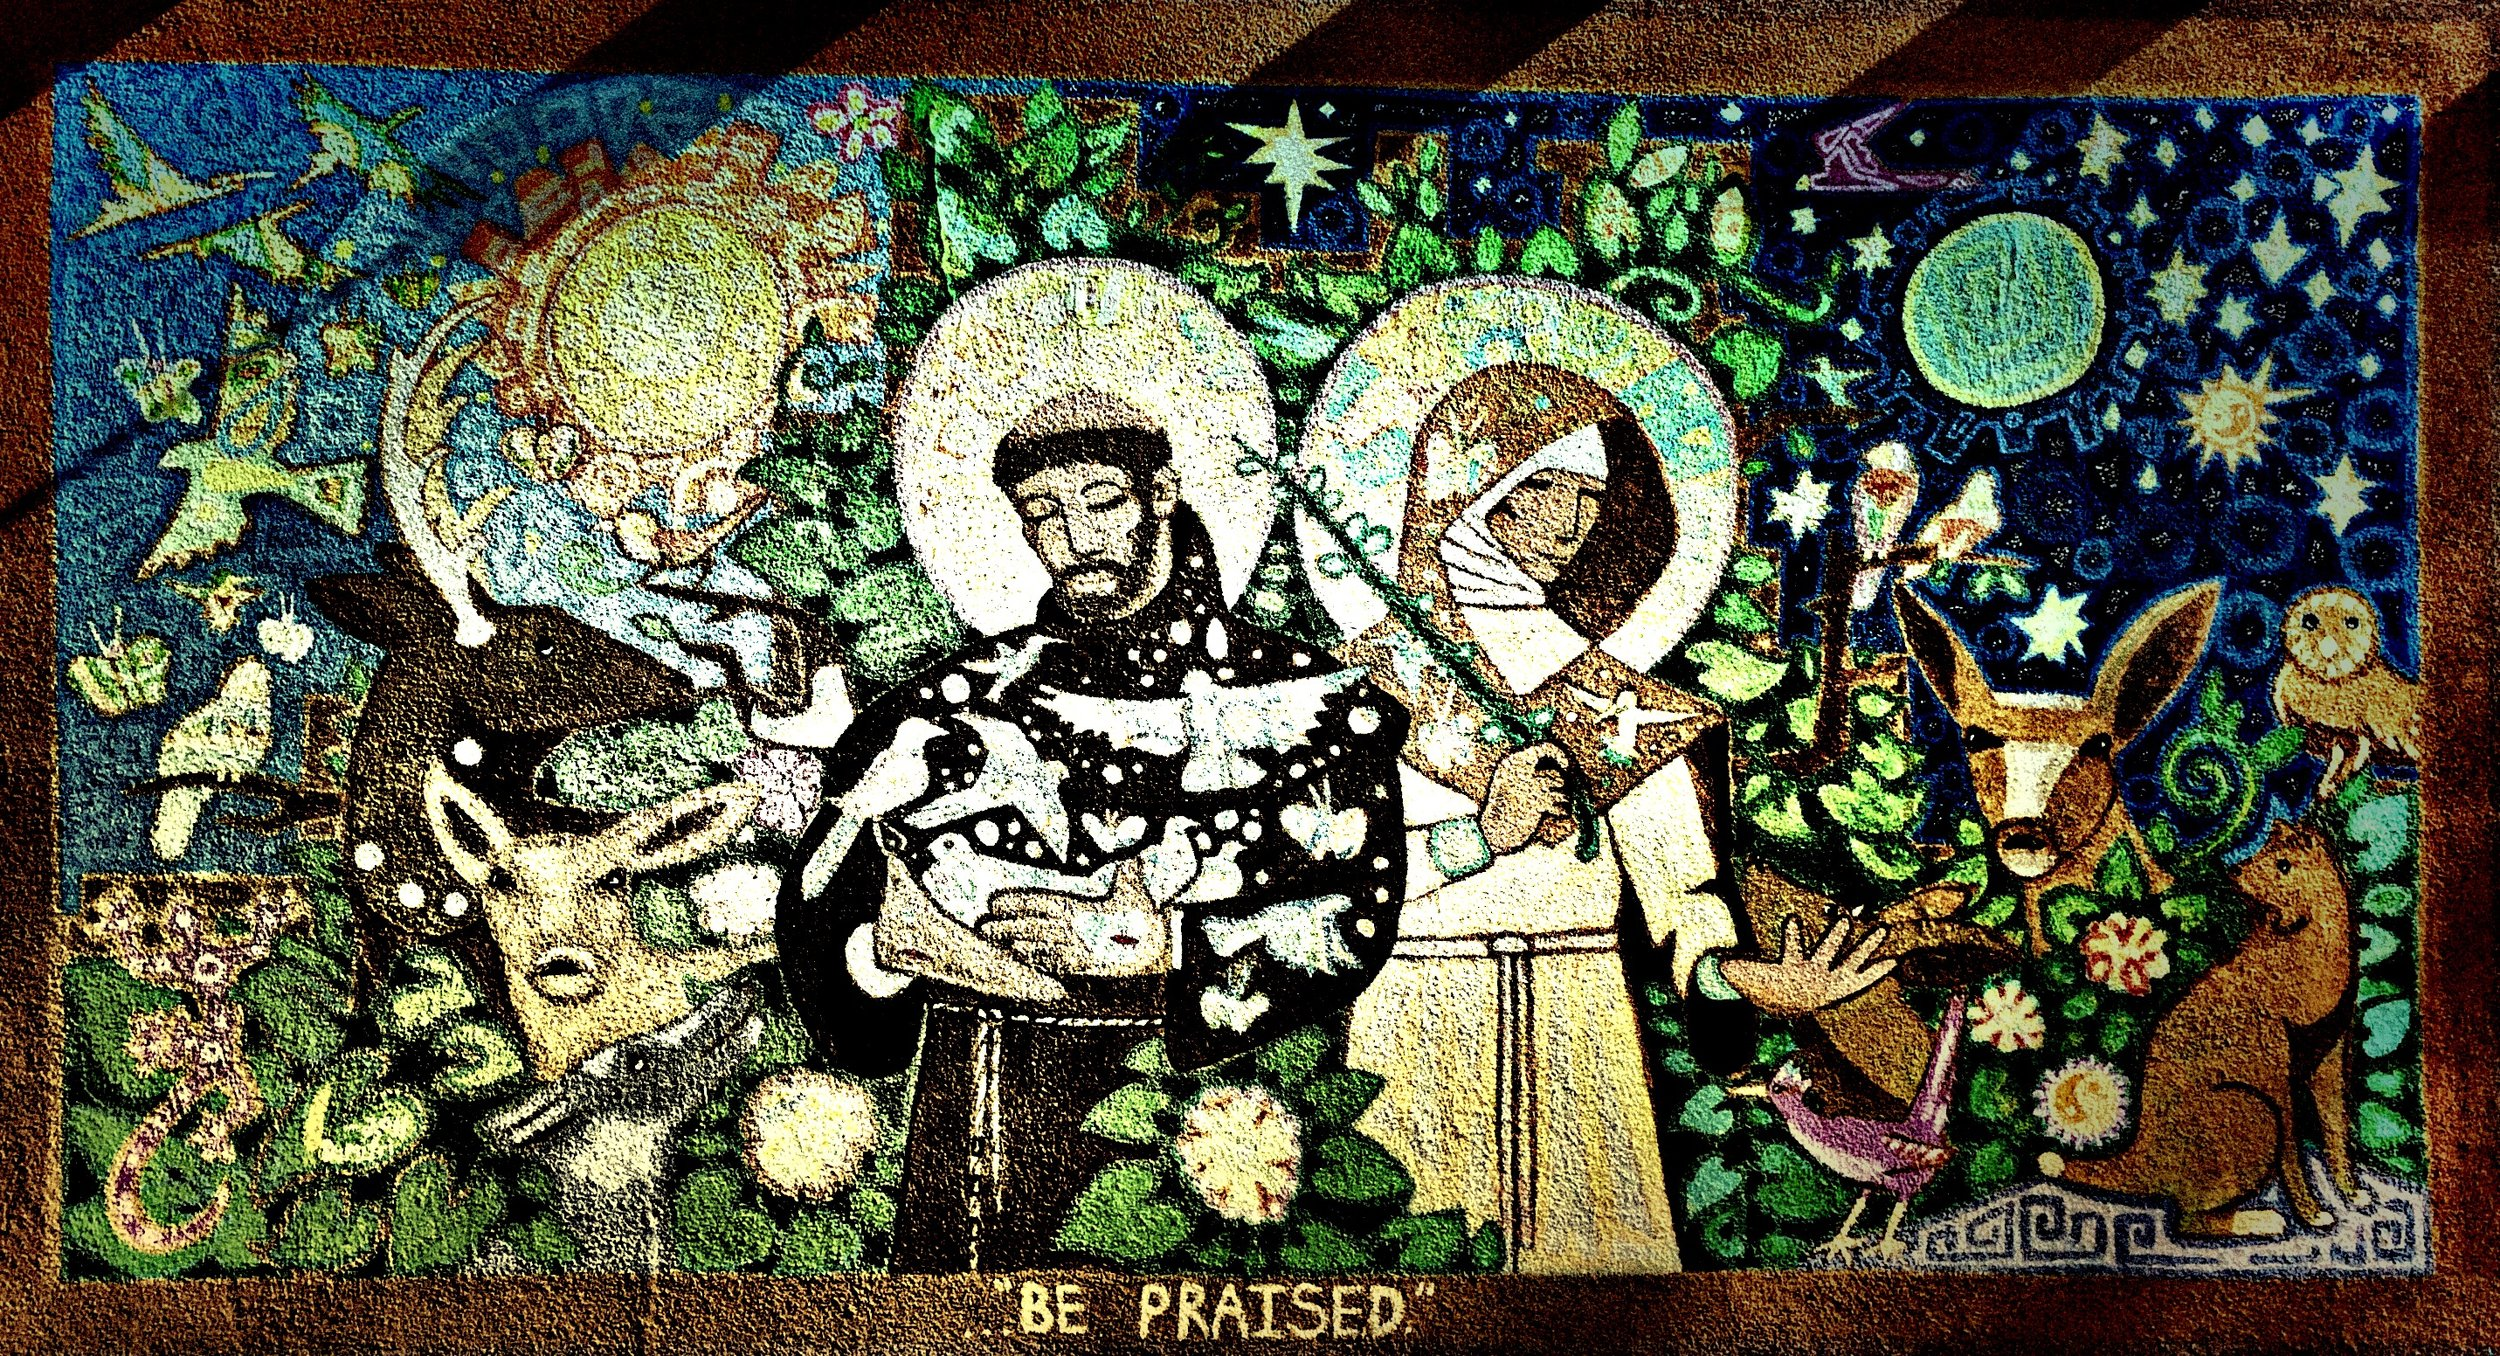 St. Francis - St. Claire Mural